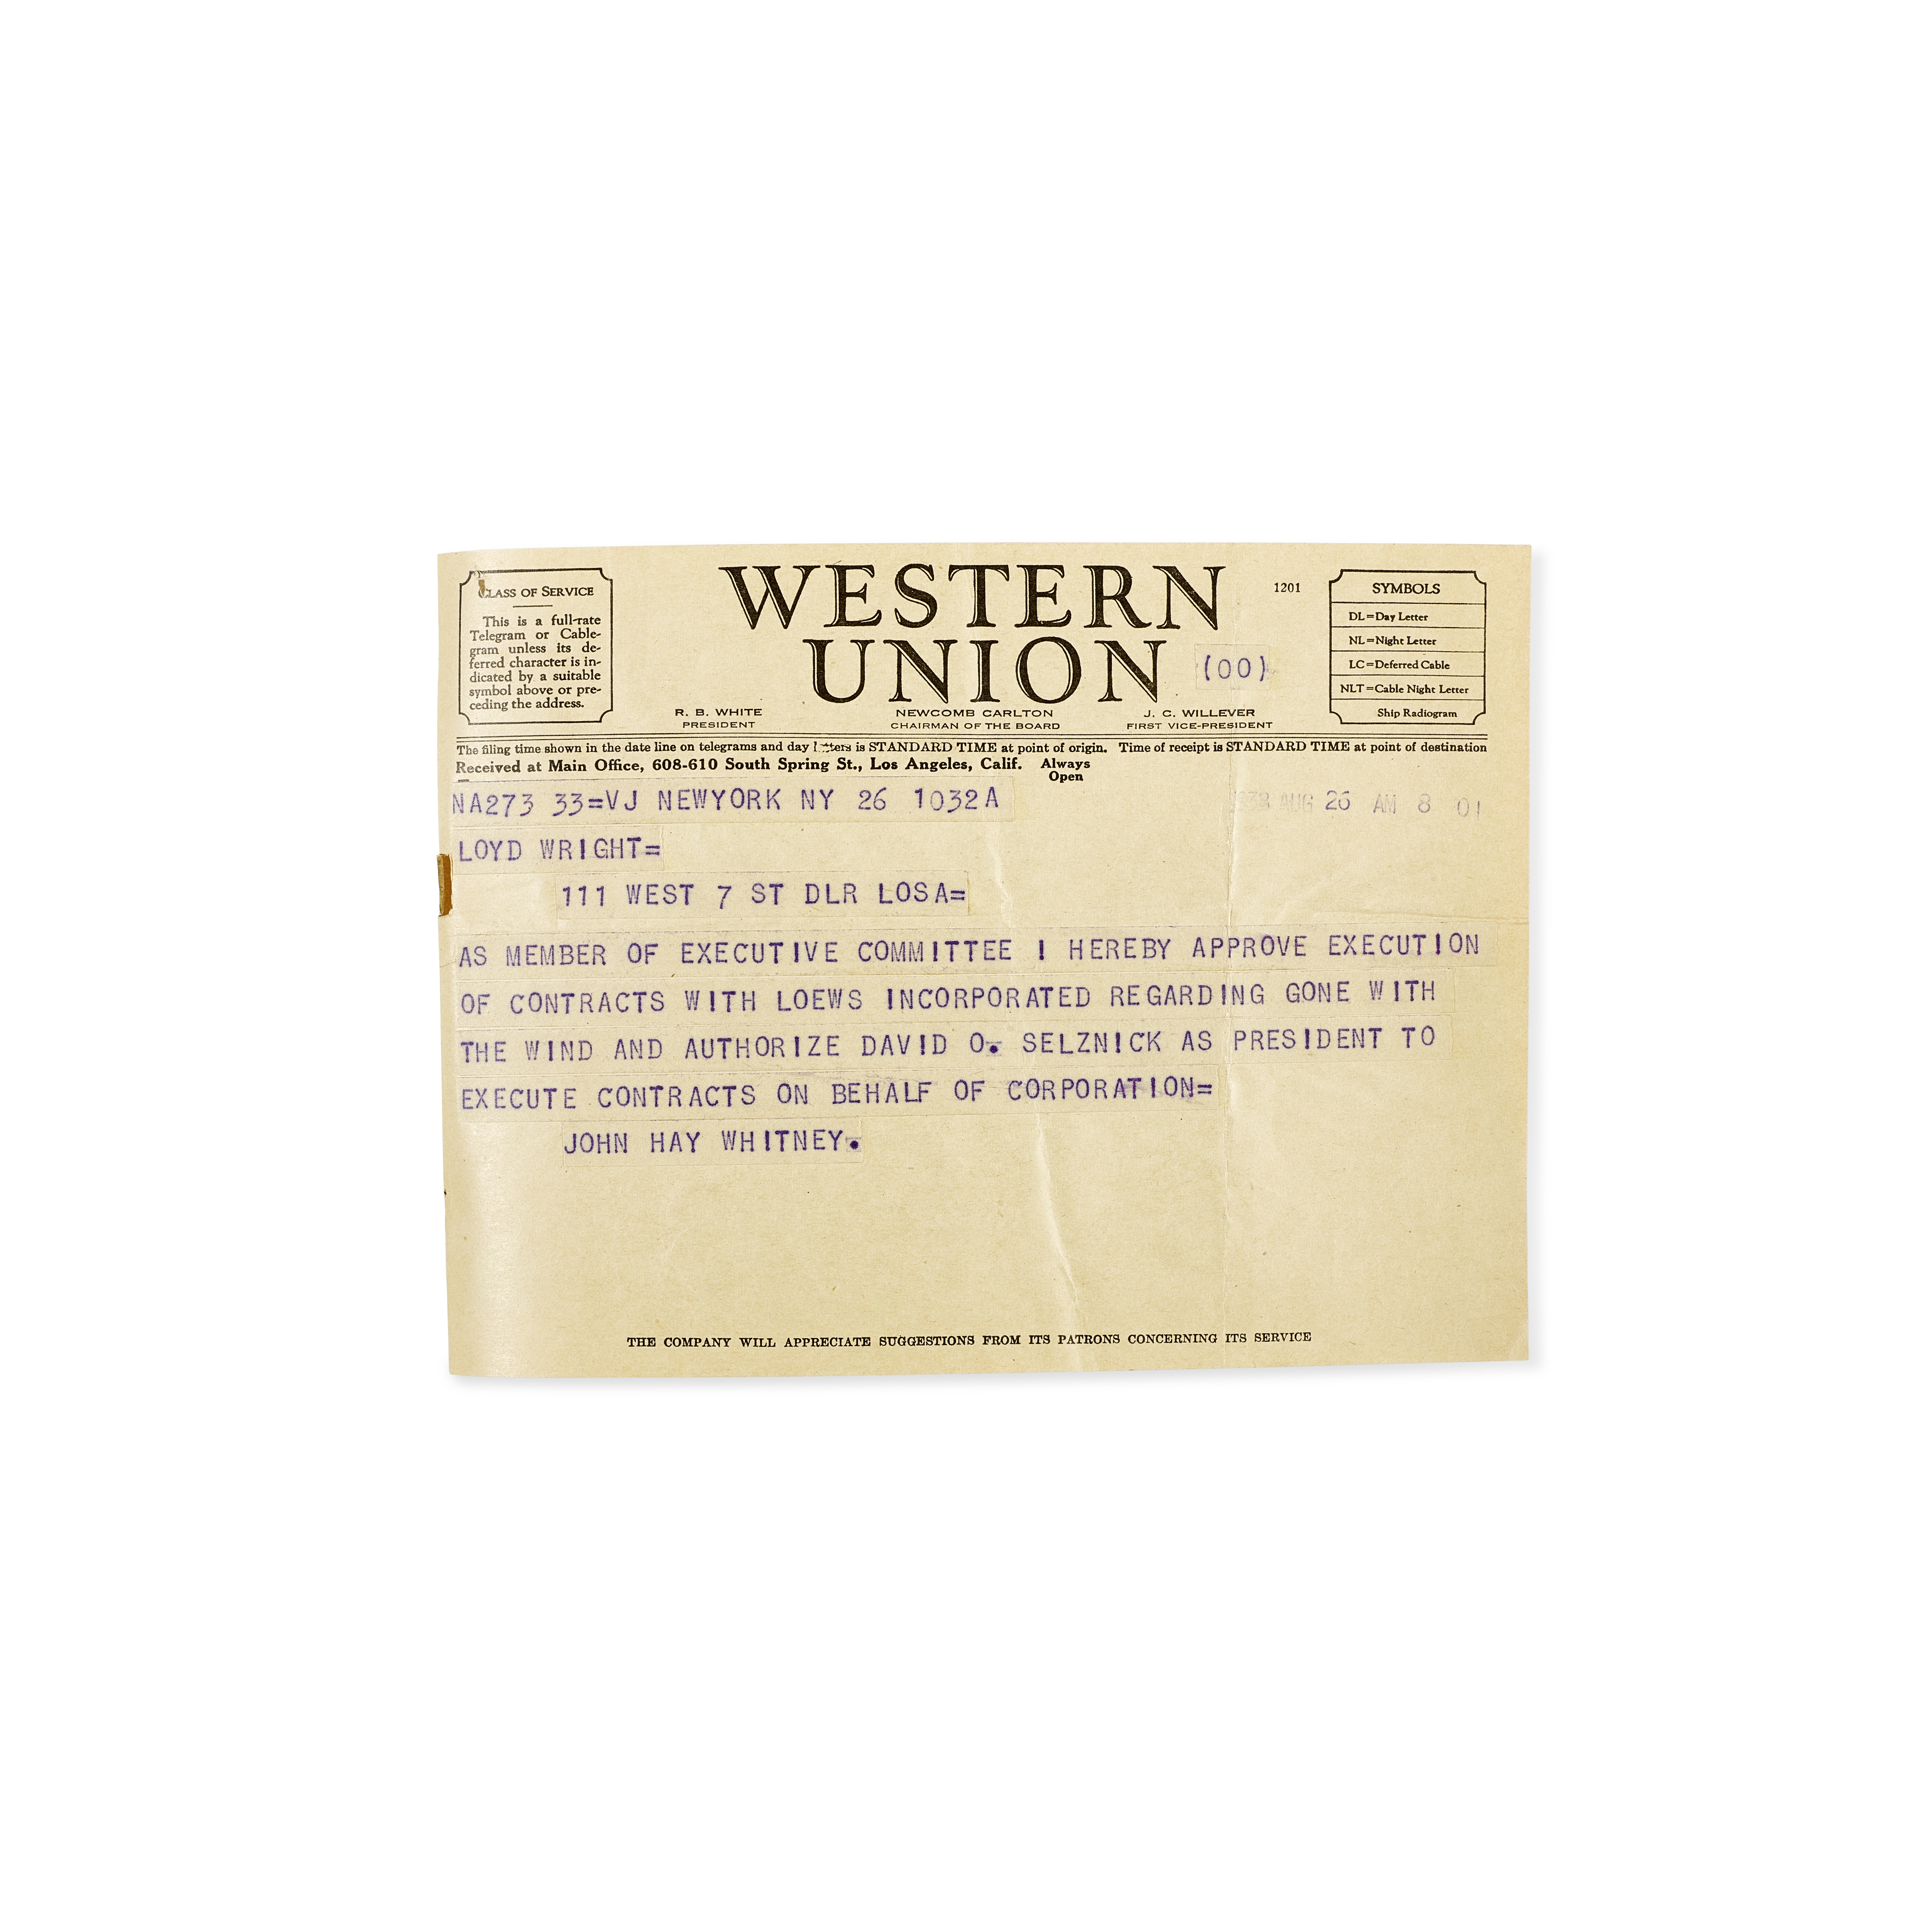 Lot 1039 - A David O. Selznick signed resolution to produce Gone With the Wind